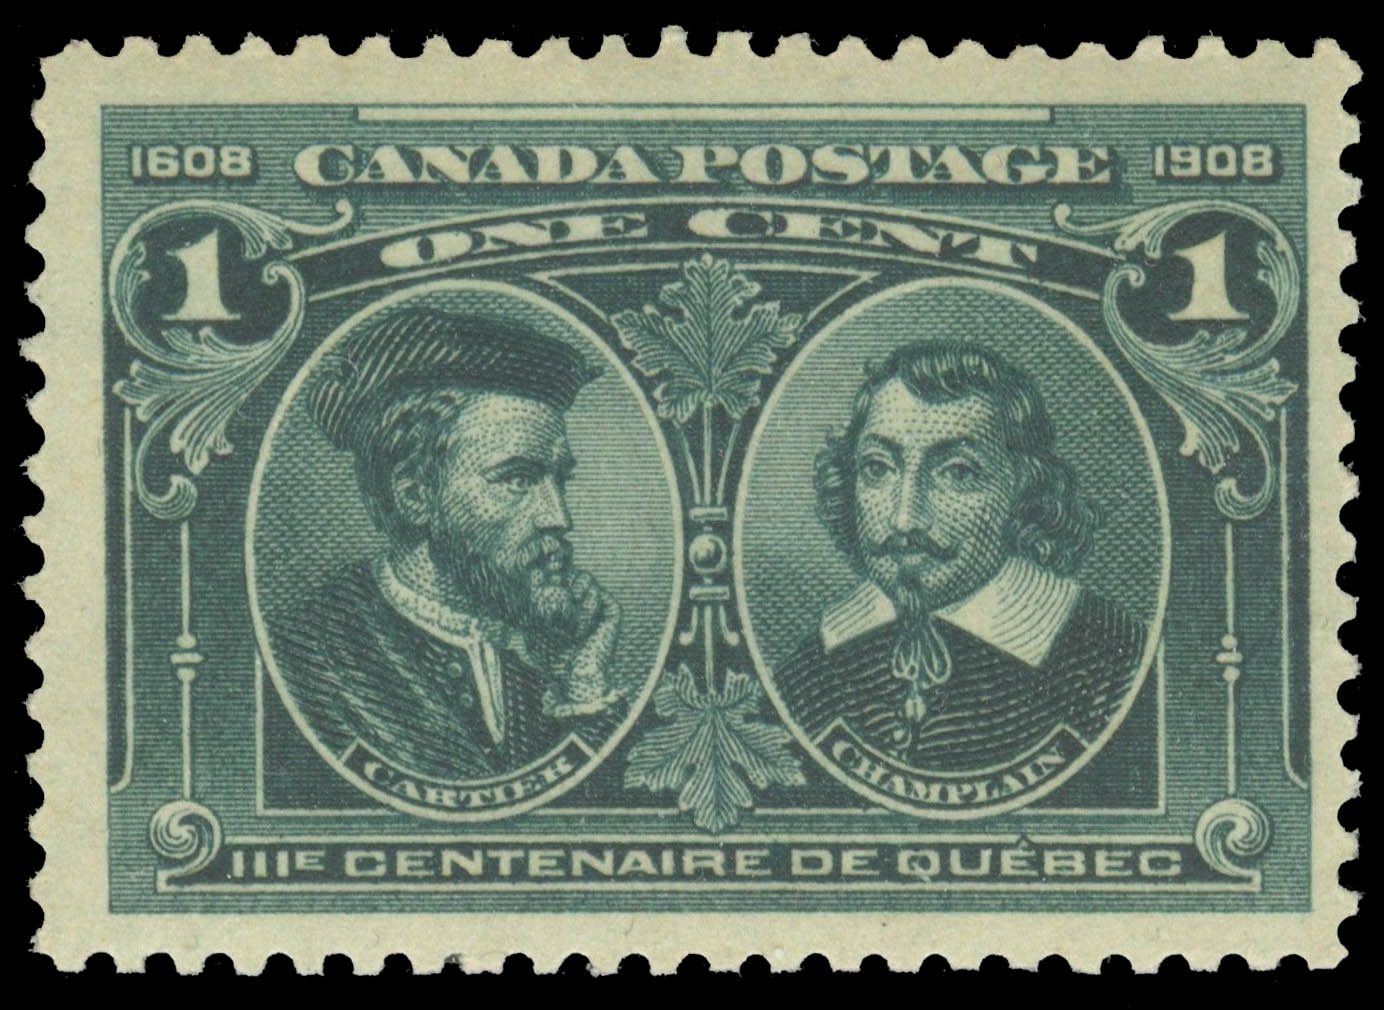 Cartier & Champlain Canada Postage Stamp